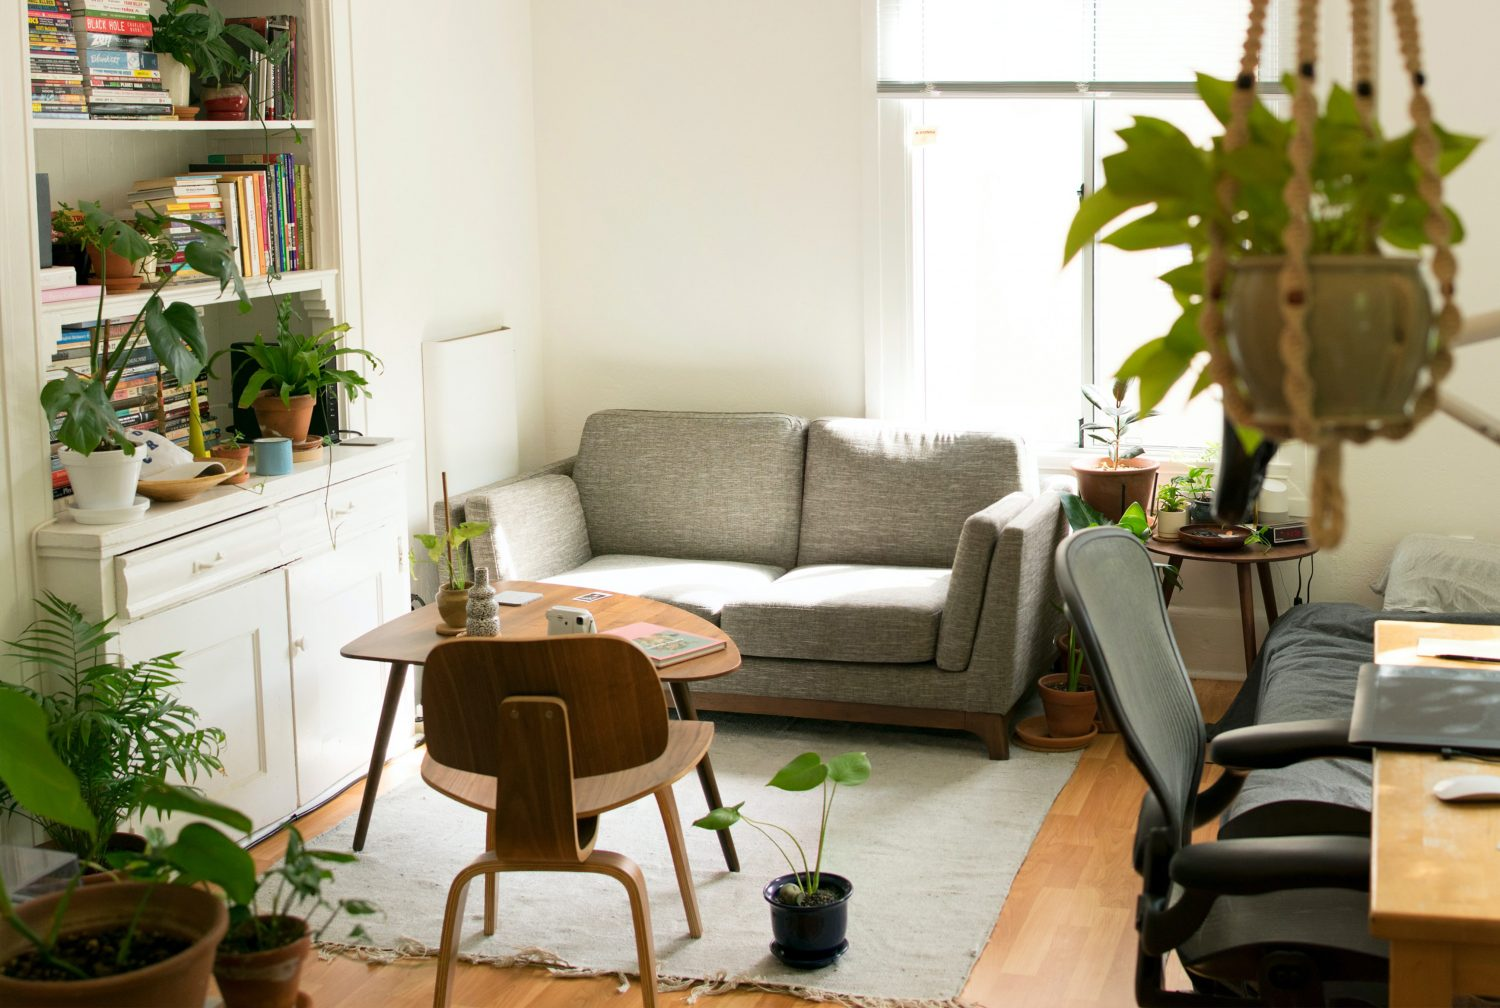 Green Living: 10 Indoor Plants For Your HDB Apartment